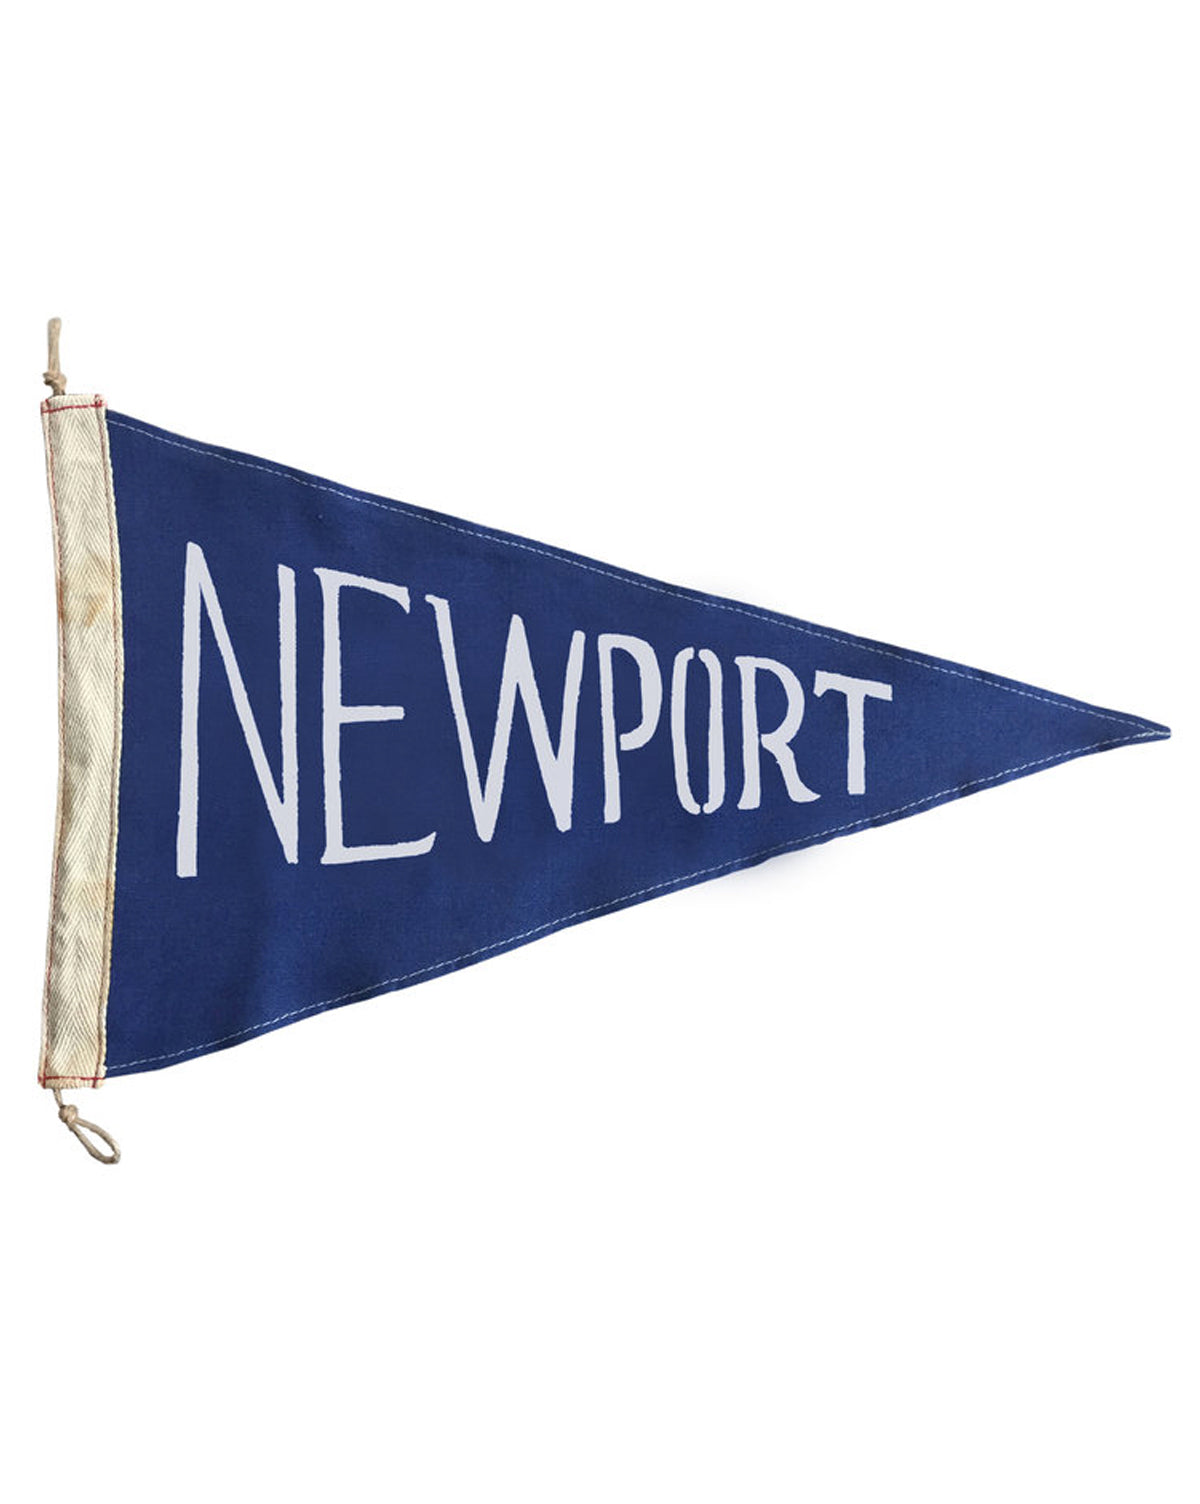 Newport Pennant – McGee & Co.